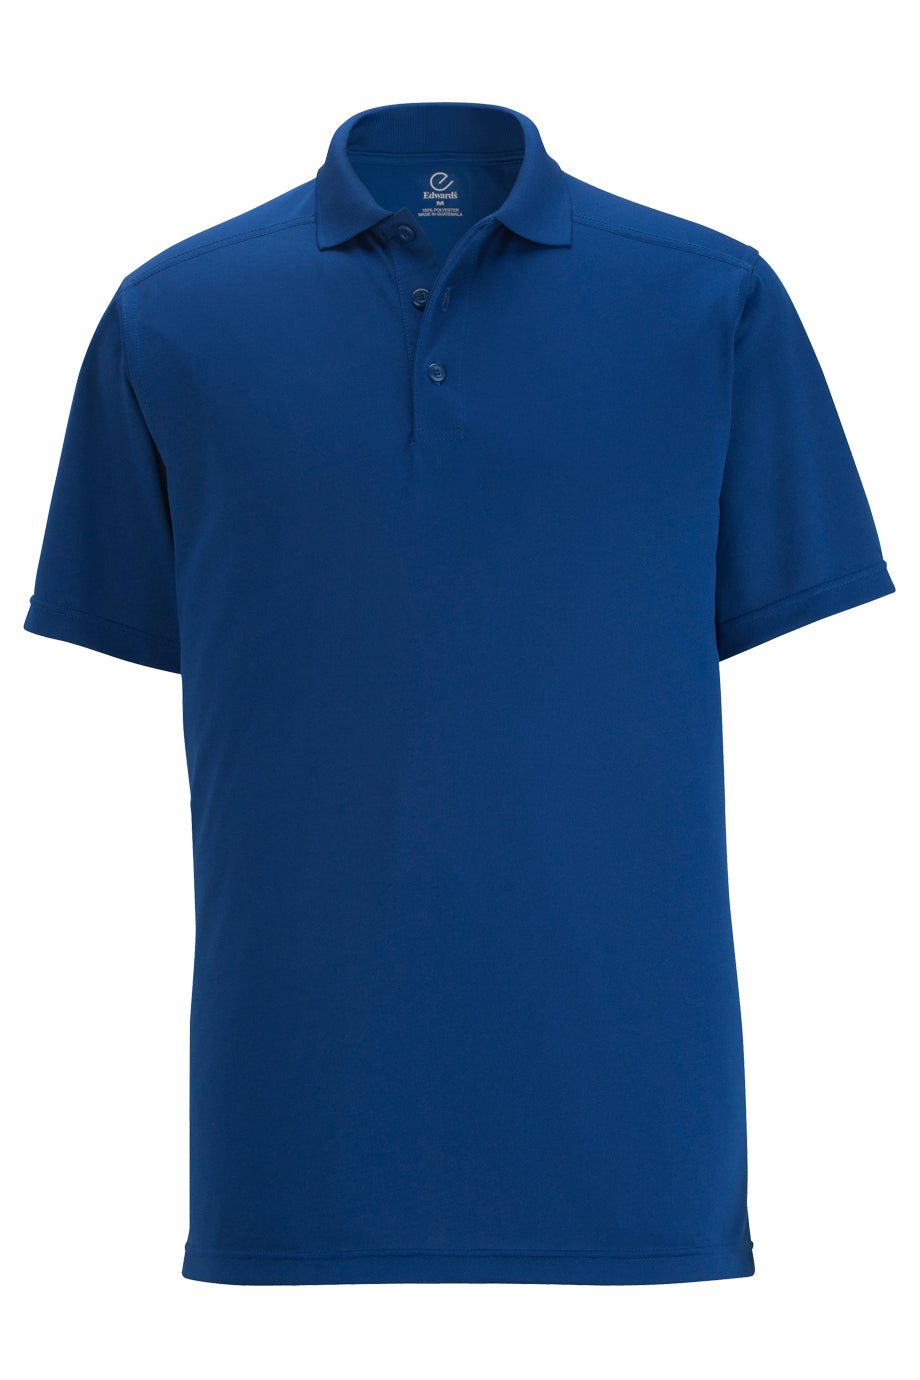 Royal Edwards Mens Snag-Proof Short Sleeve Polo